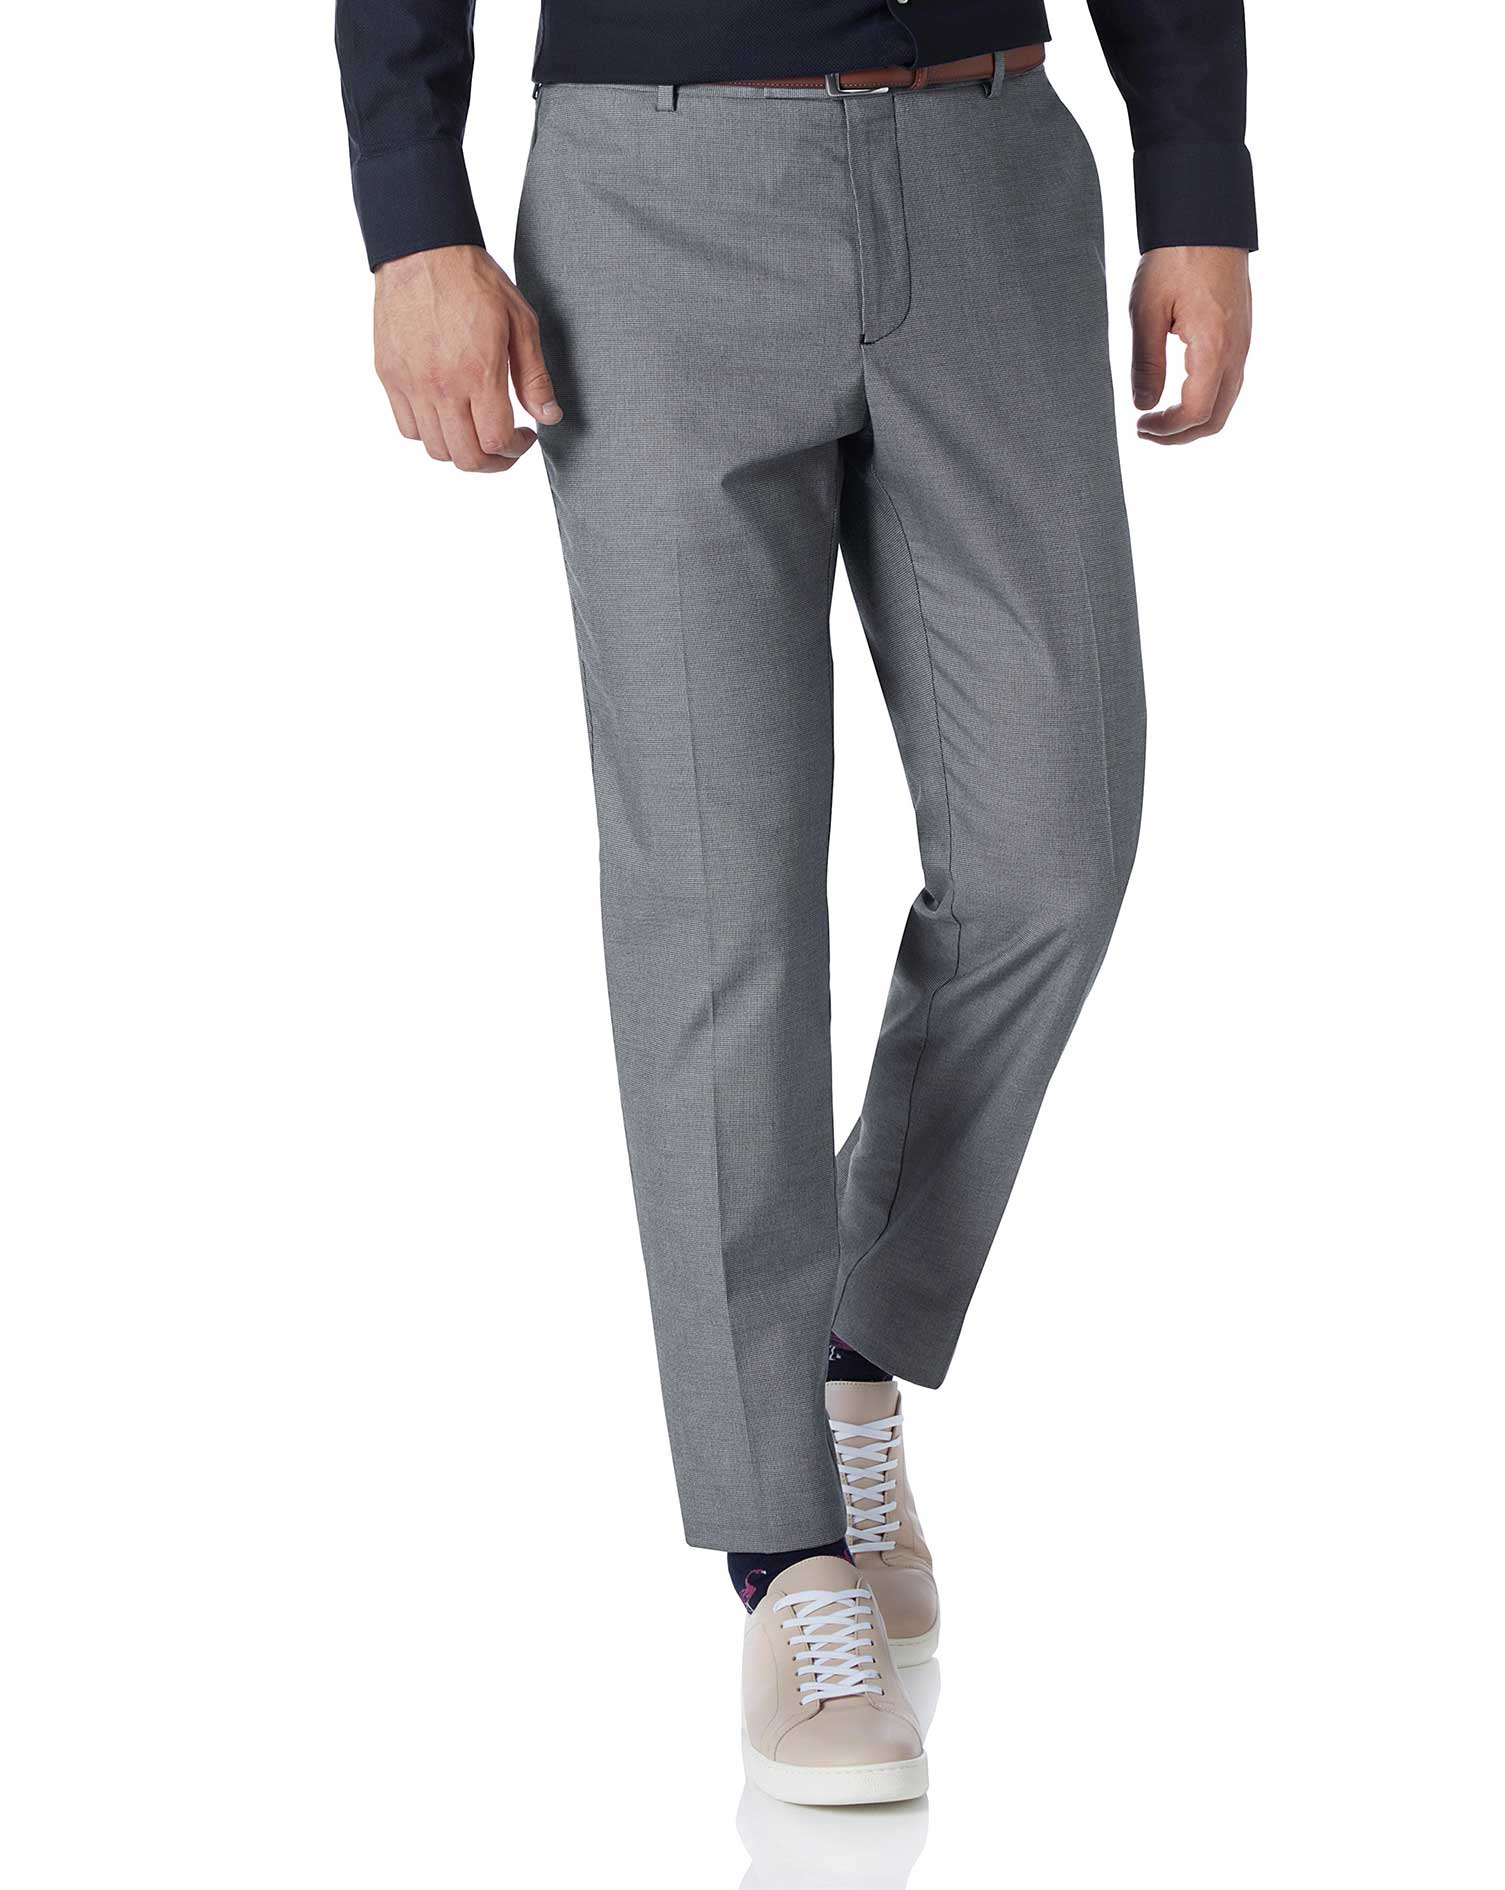 White and Navy Extra Slim Fit Stretch Non-Iron Trousers Size W32 L32 by Charles Tyrwhitt